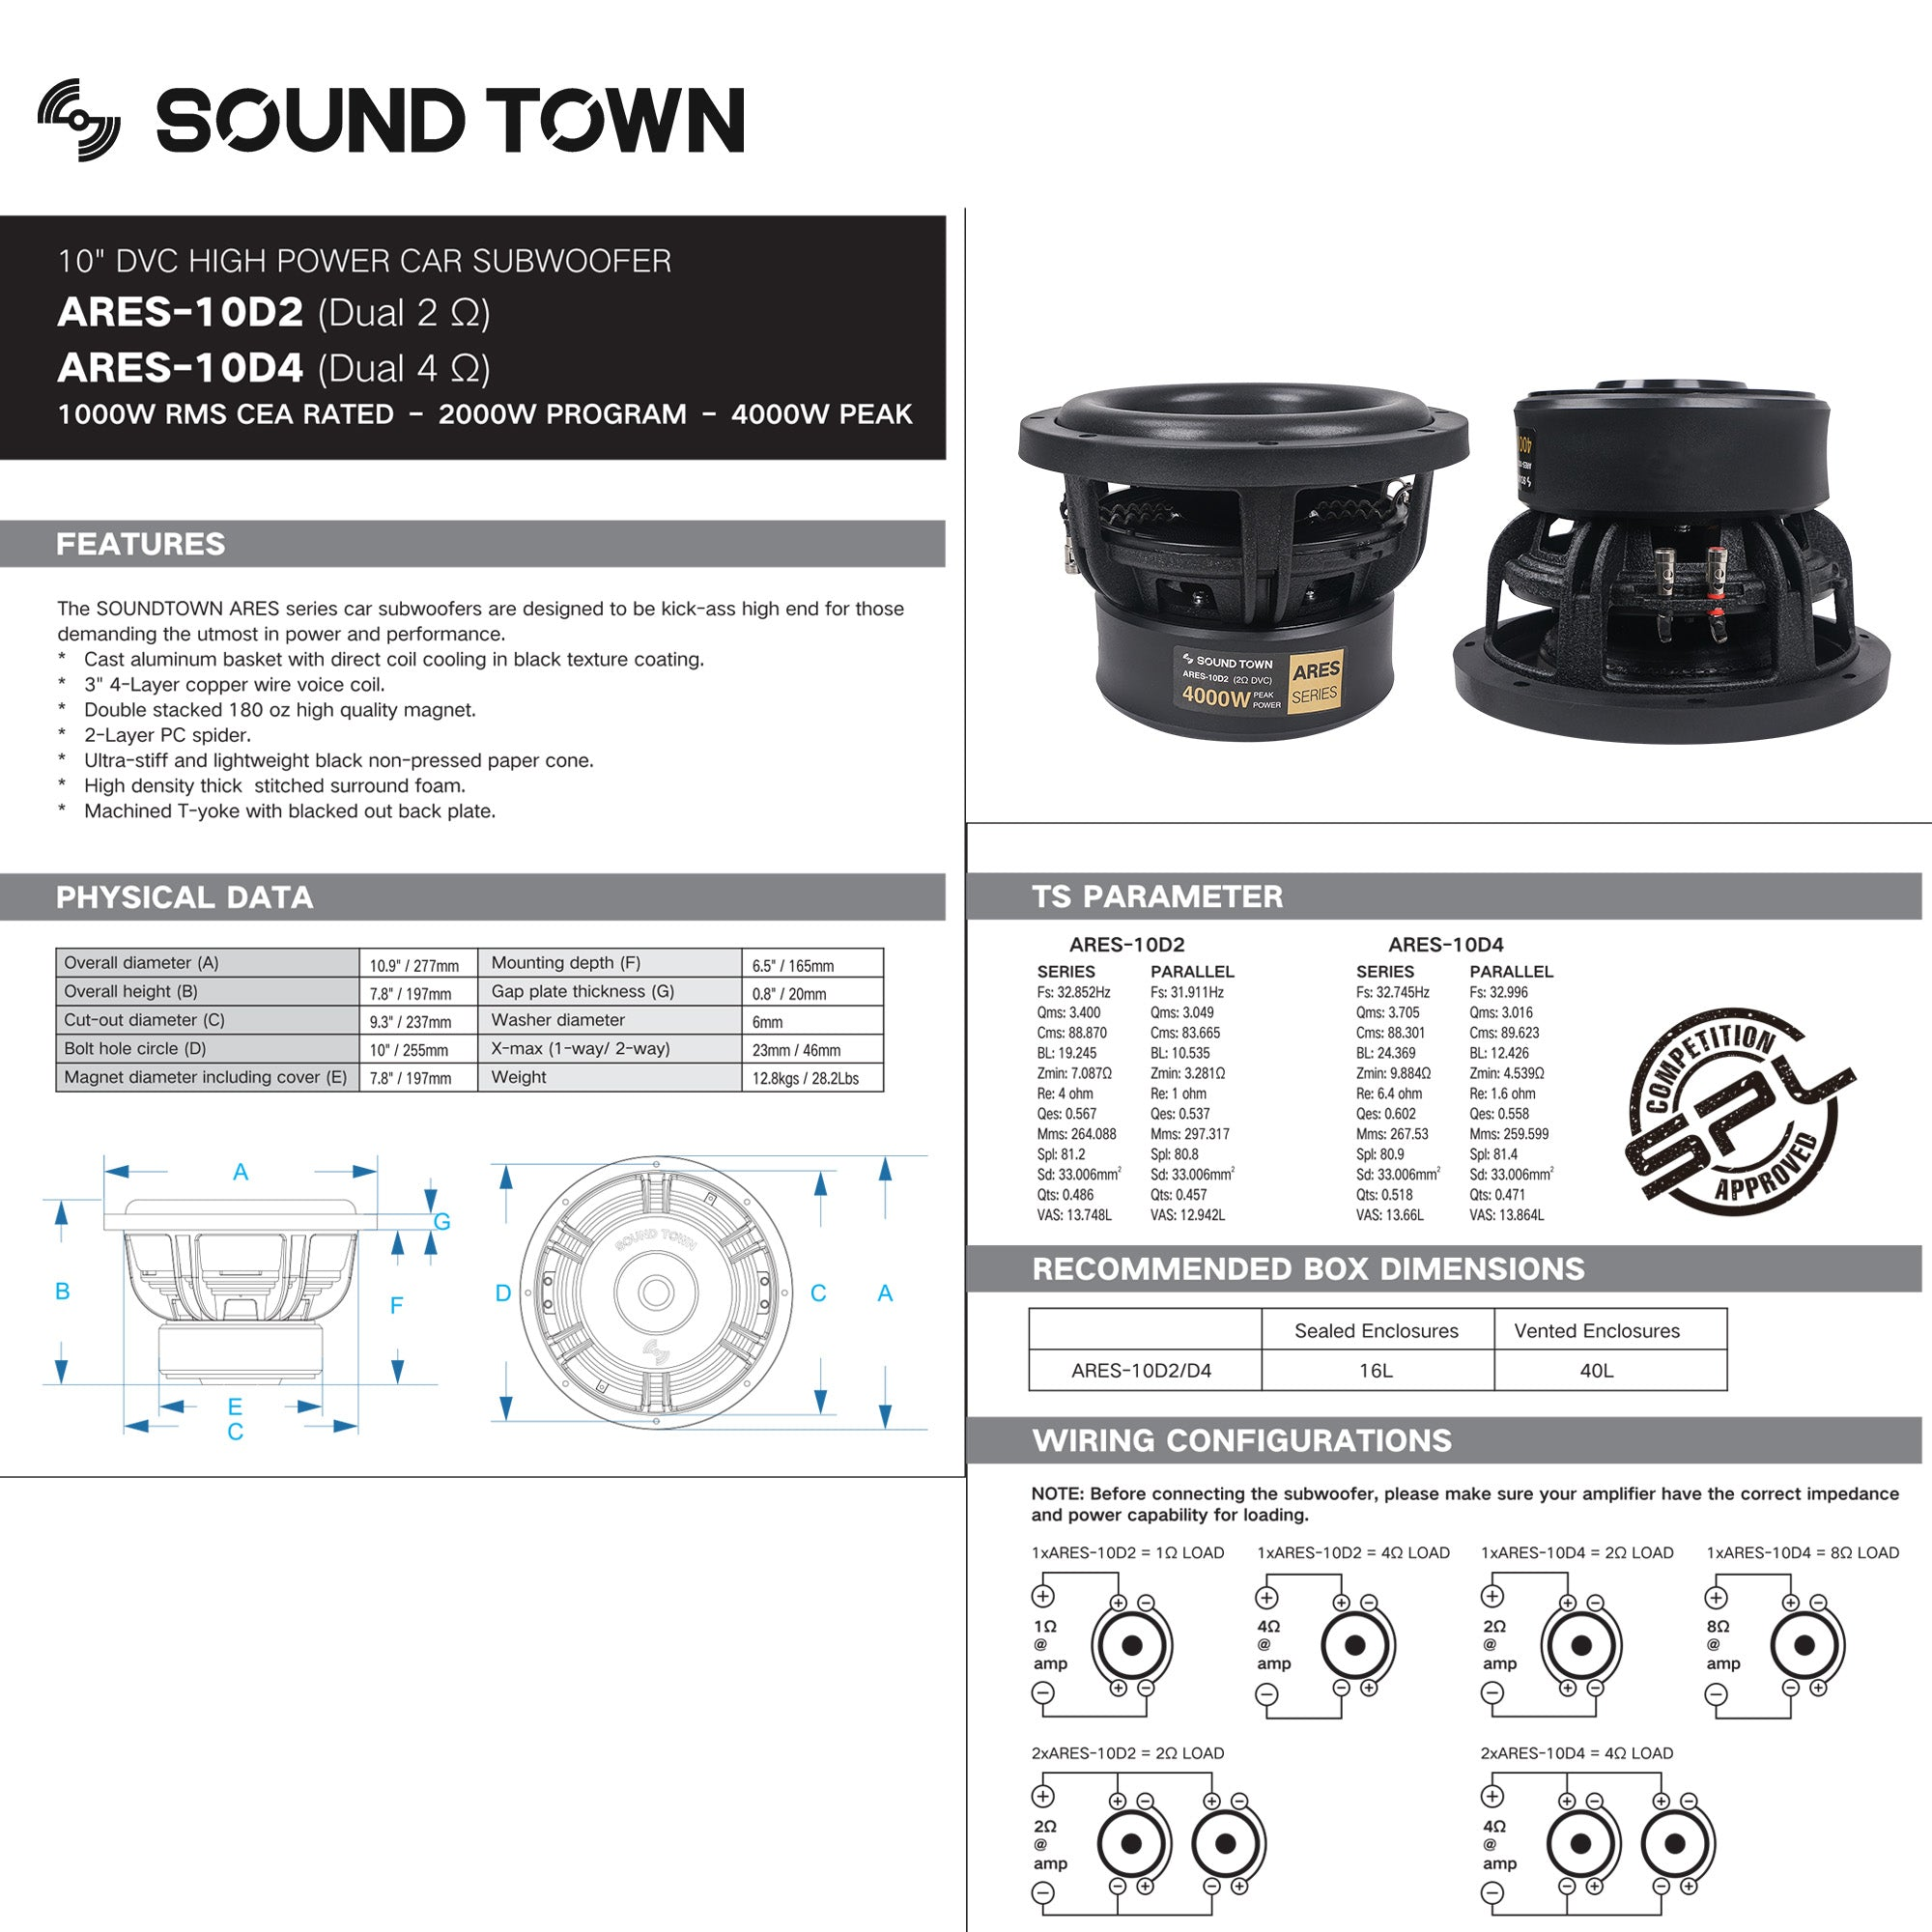 """Sound Town ARES-10D2 10"""" Dual Voice Coil 1000W Car Audio Subwoofer, Dual 2-Ohm, CEA Rated - technical specifications,"""